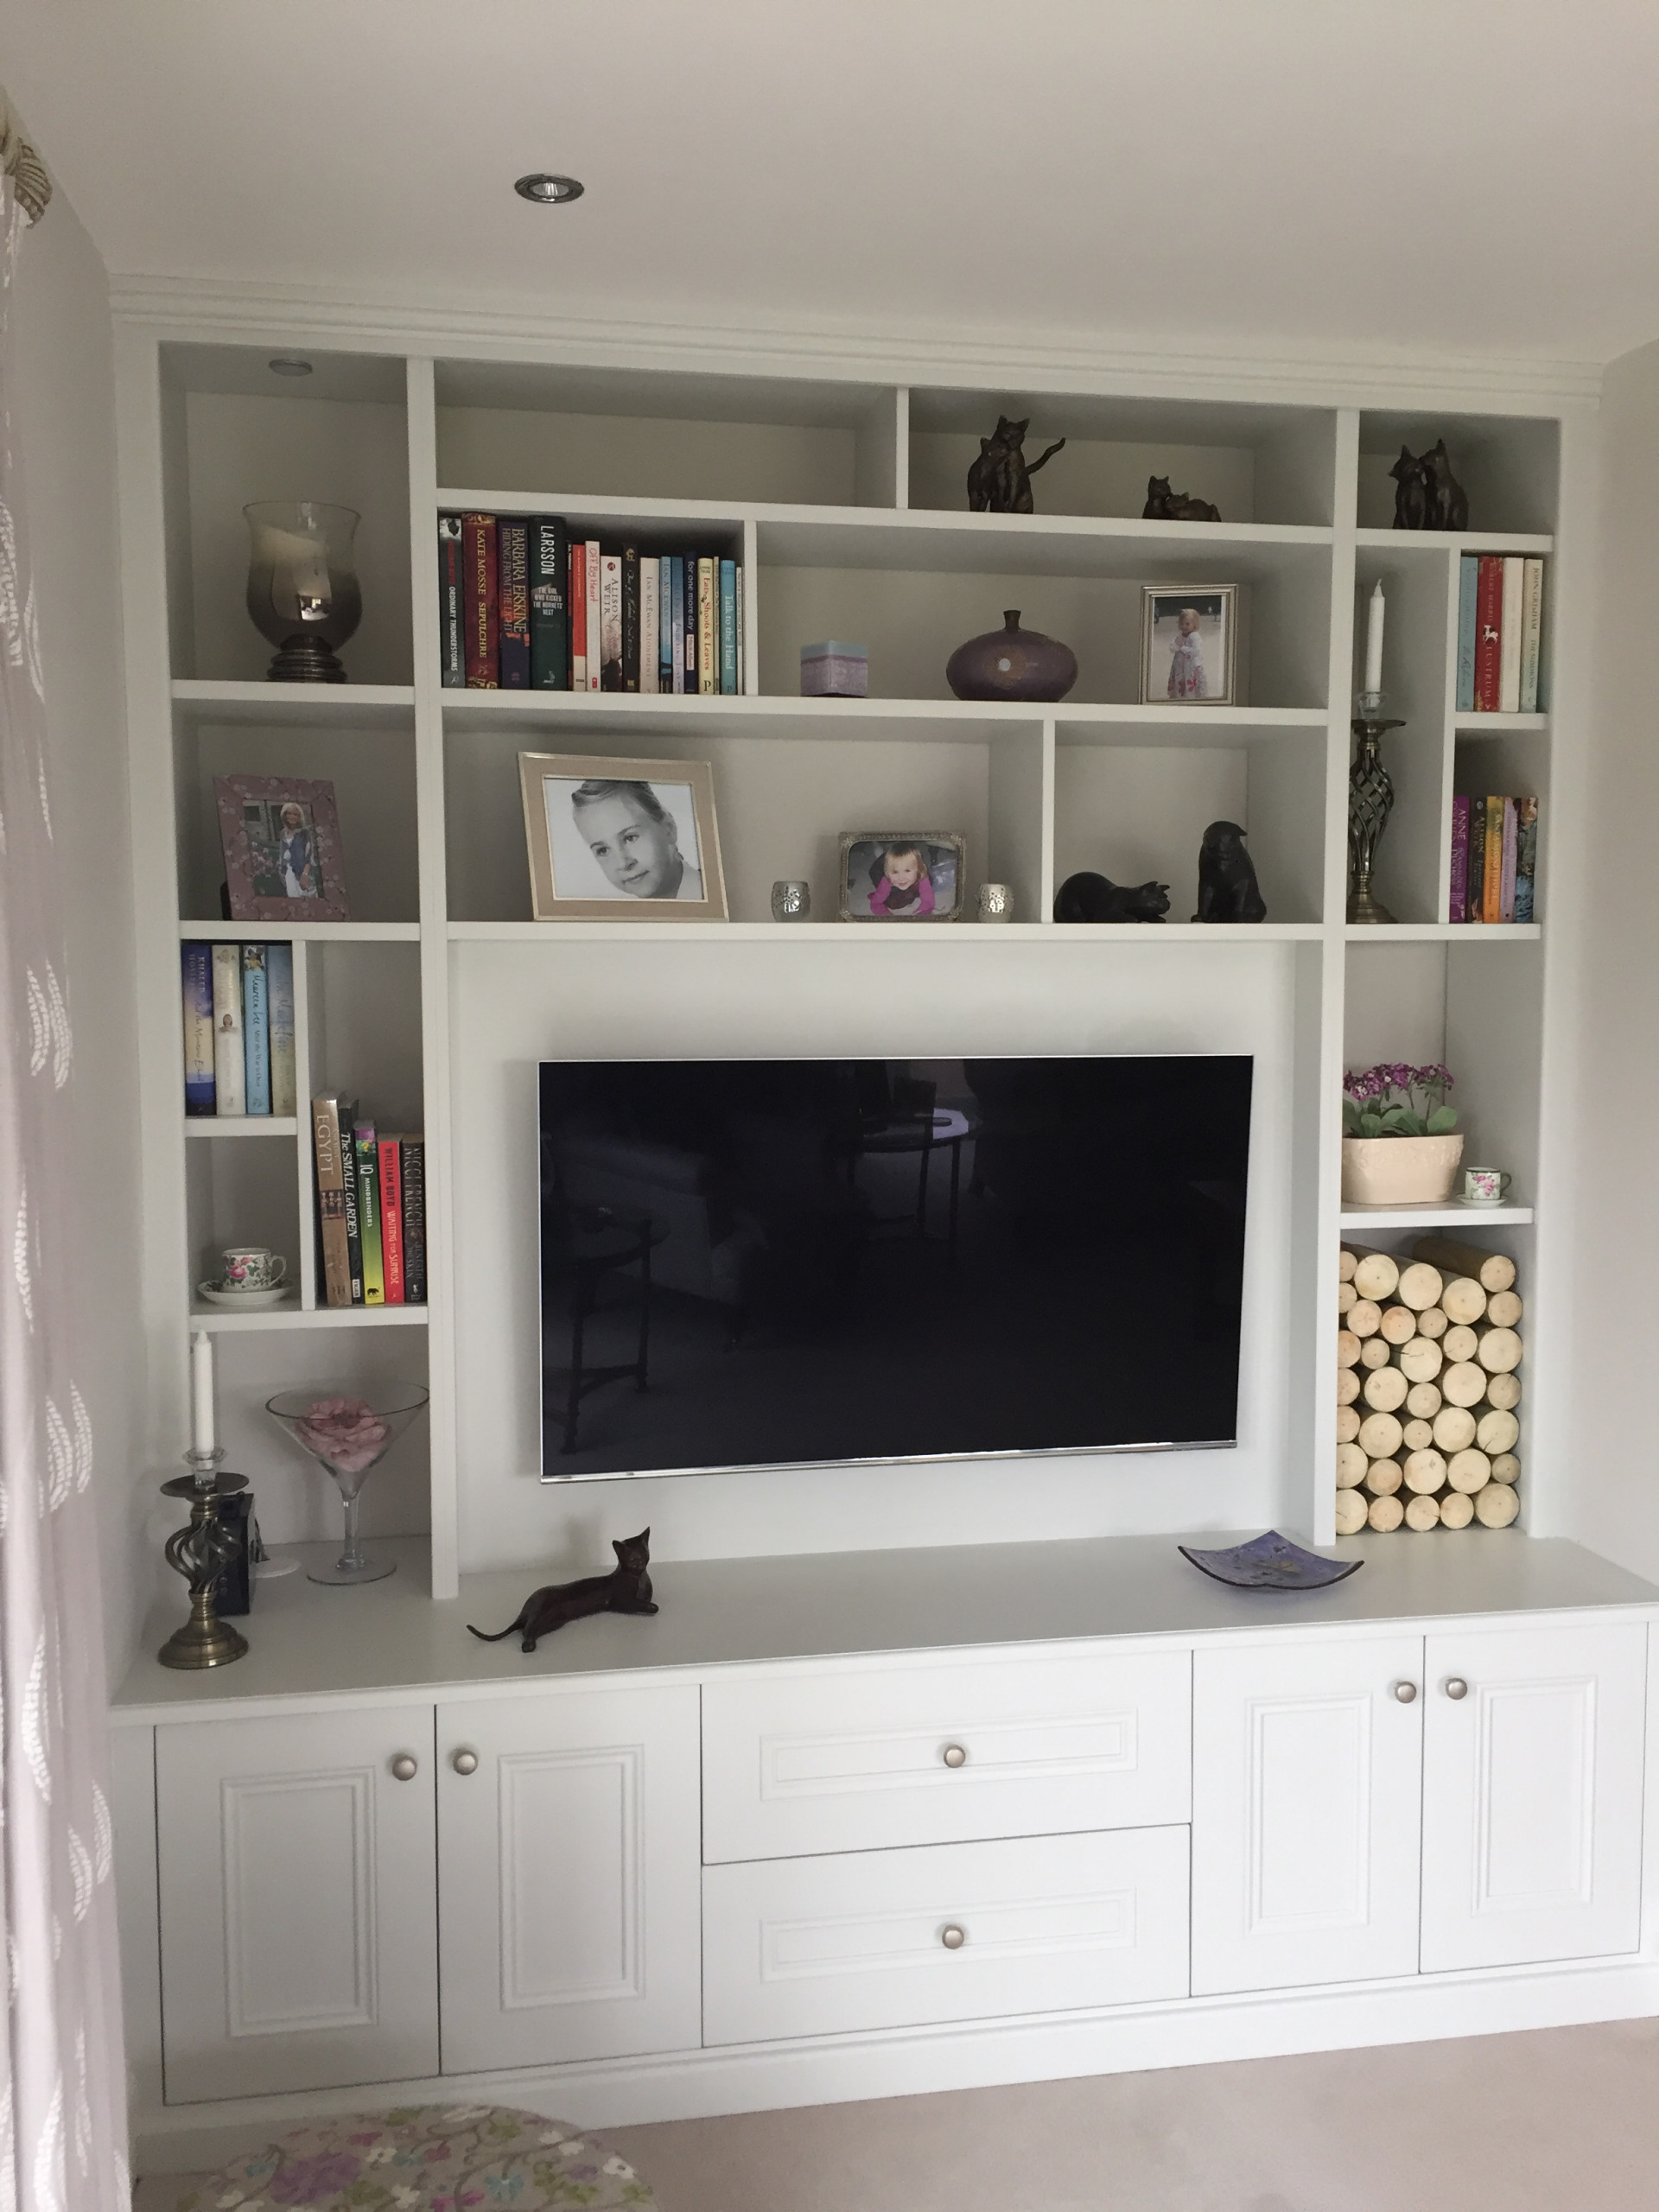 TV and Media Unit in a wide alcove